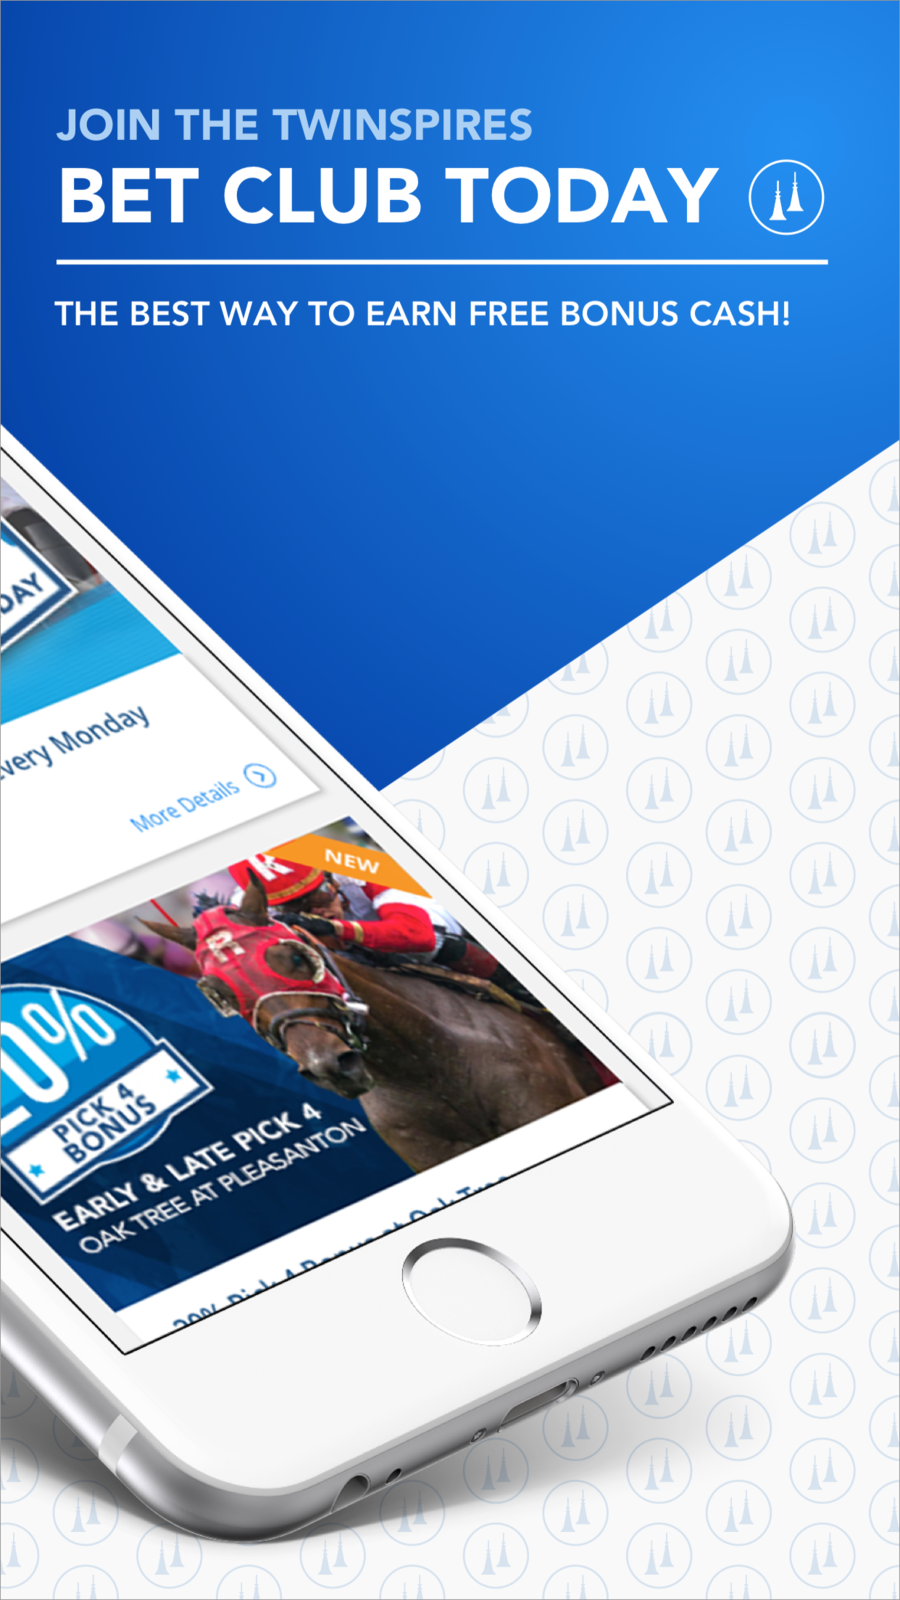 How to find my bets on twinspires spread betting account uk